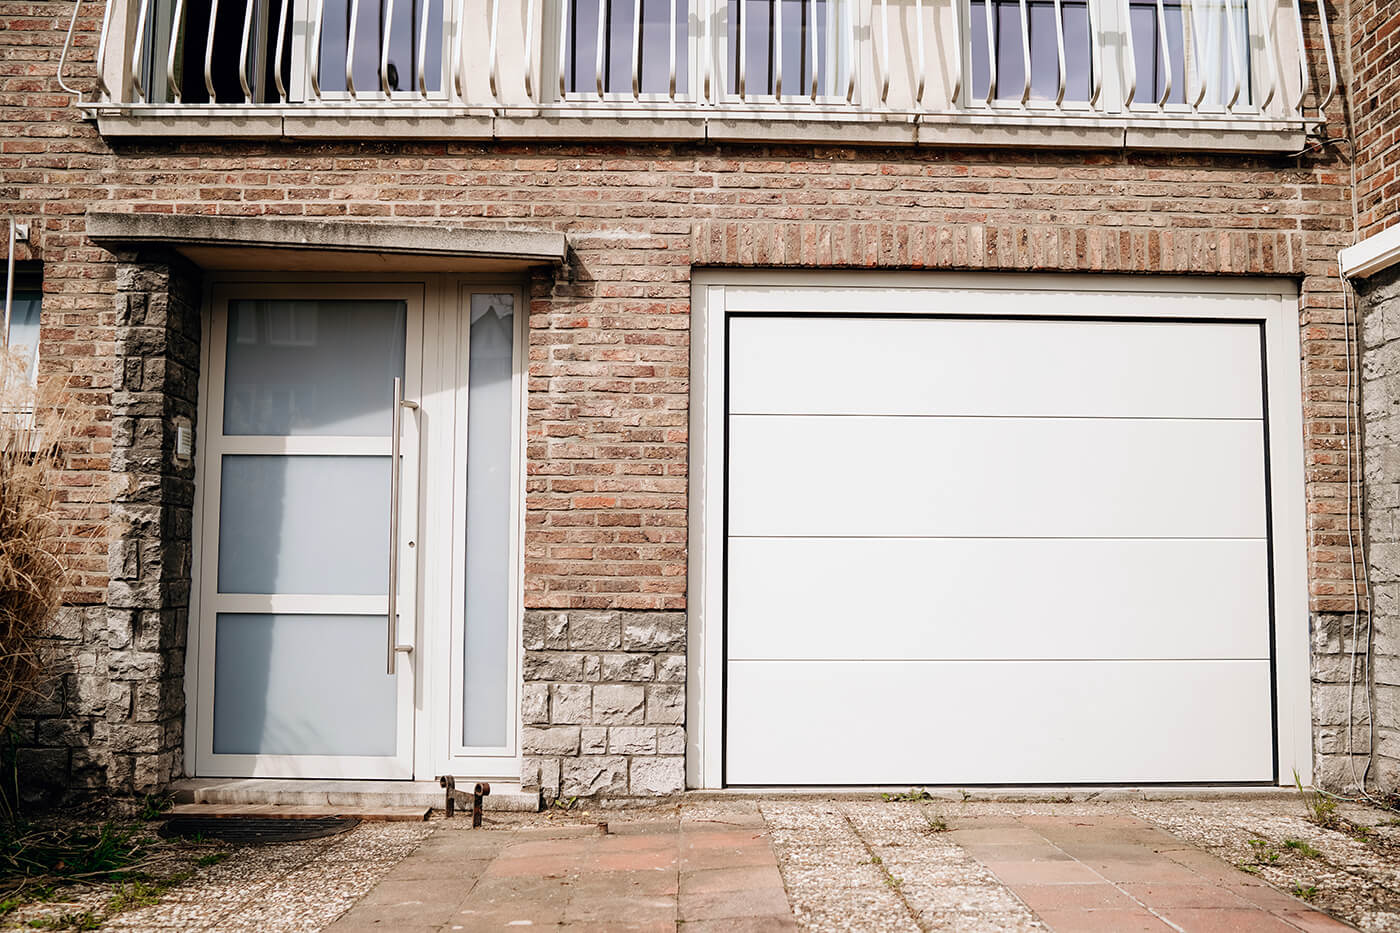 Made-to-measure sectional garage door - Raposo Charleroi, Image n°5